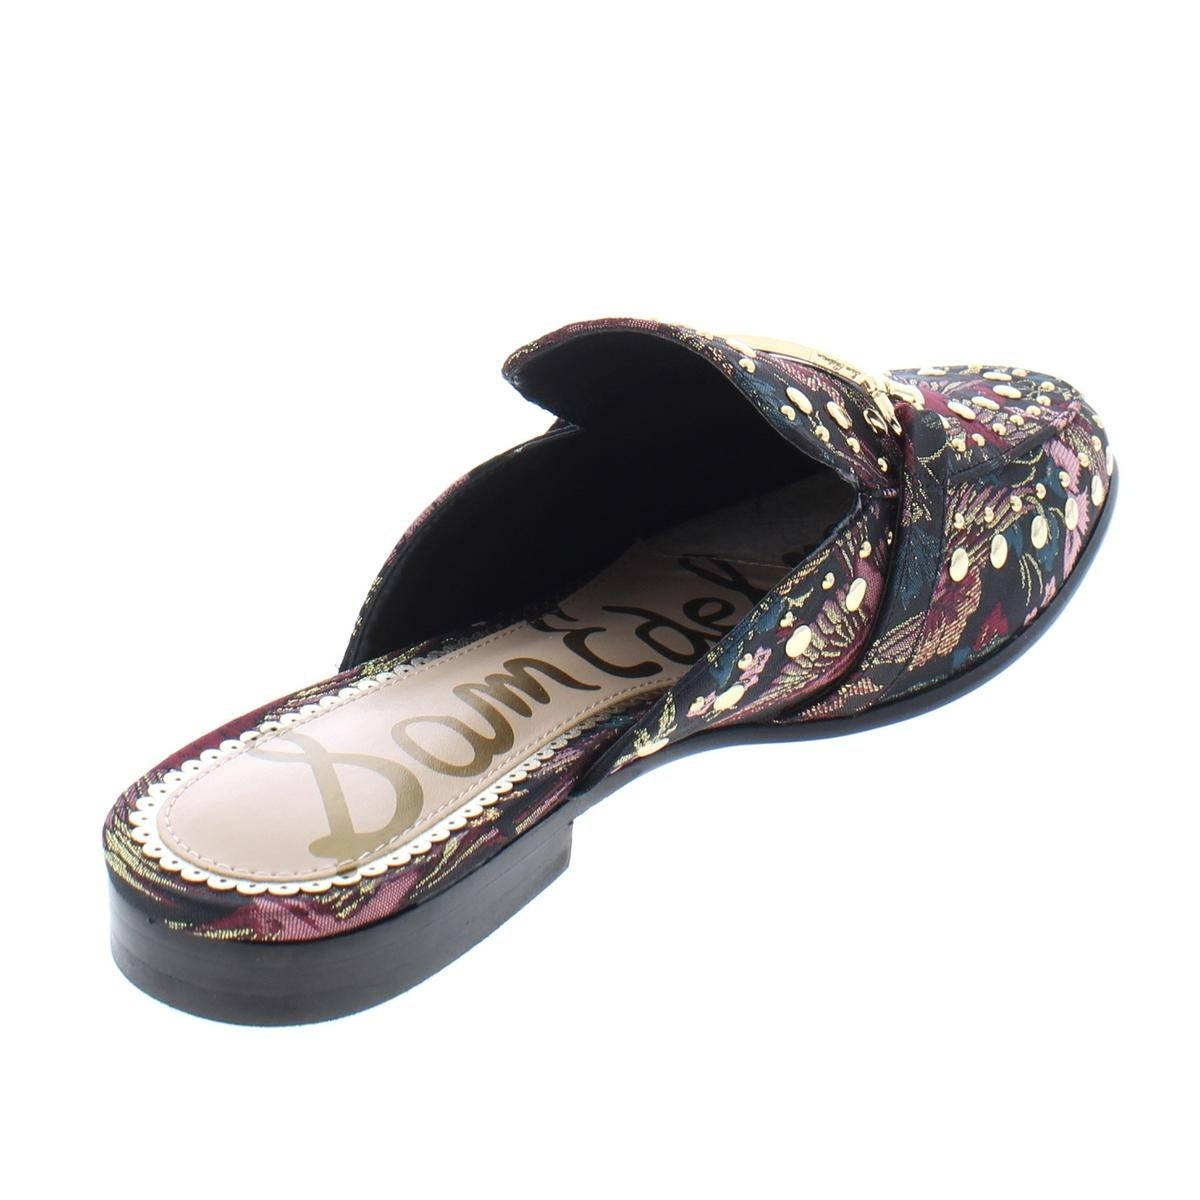 c259d5b673d4f8 Shop Sam Edelman Womens Marilyn Mules Jacquard Studded - Free Shipping  Today - Overstock - 24030867